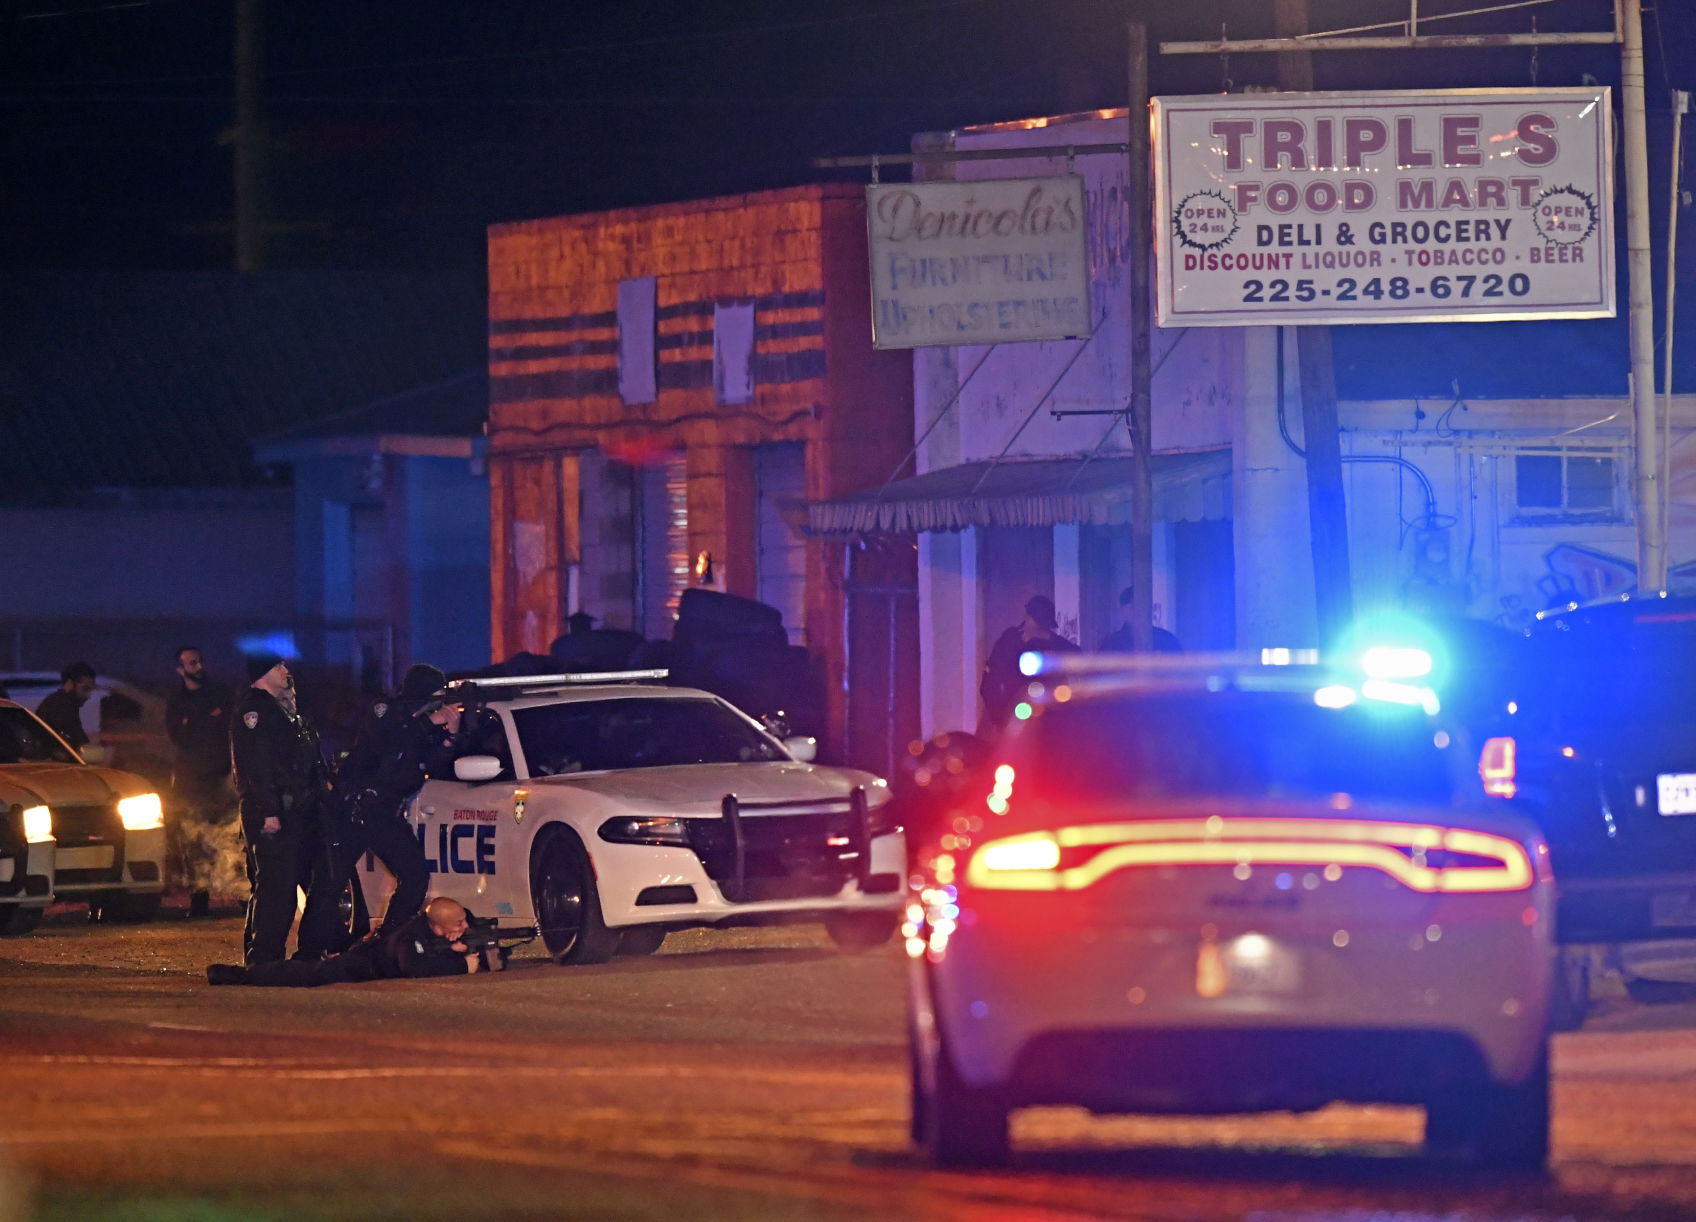 'Hostage situation' at Triple S store turns out to be man fearful he was being chased